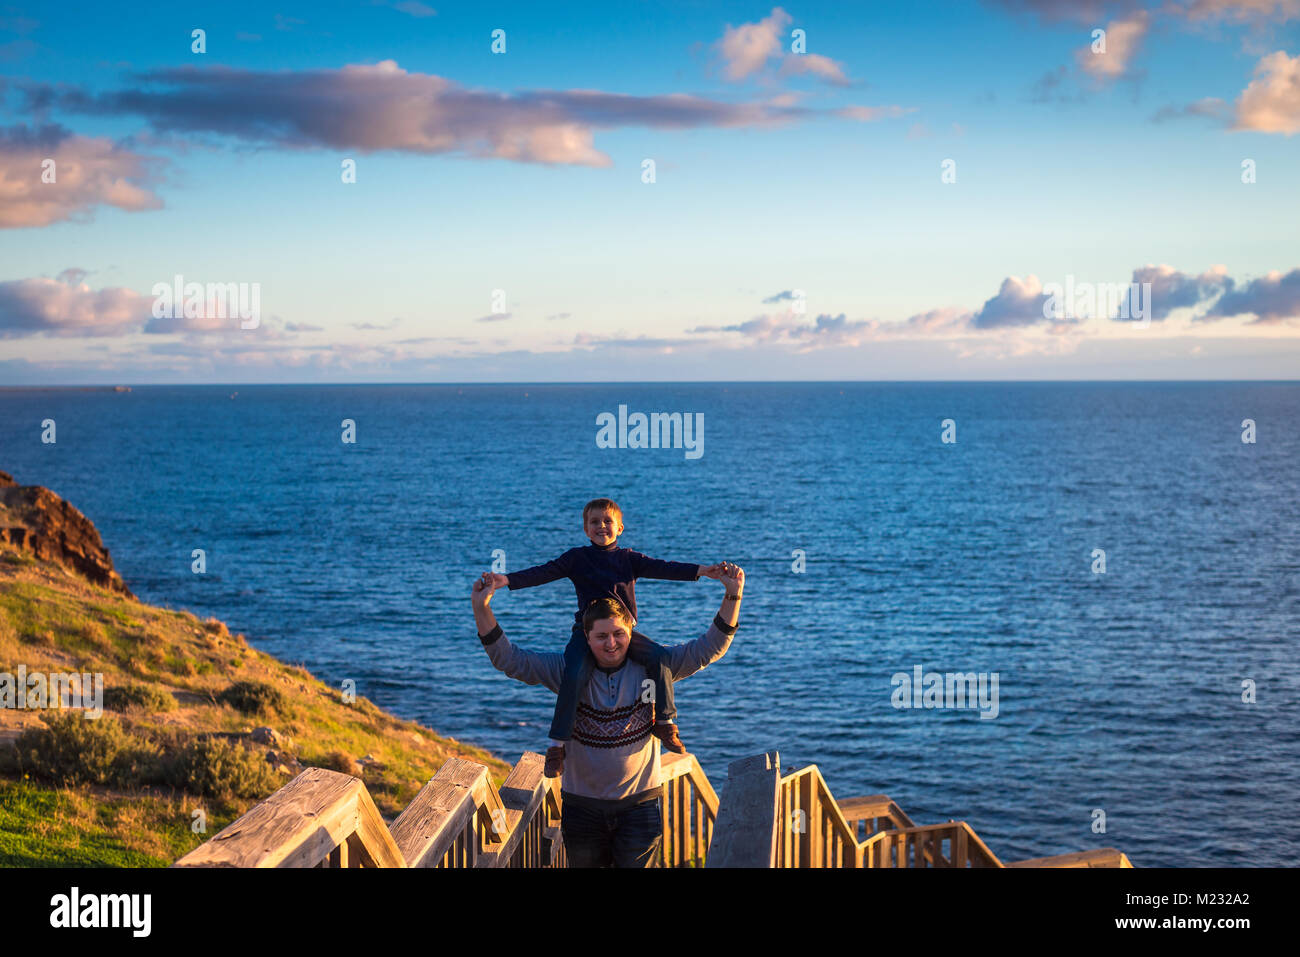 Father giving his son piggyback ride at Hallett Cove boarwalk while enjoying sunset, South Australia - Stock Image